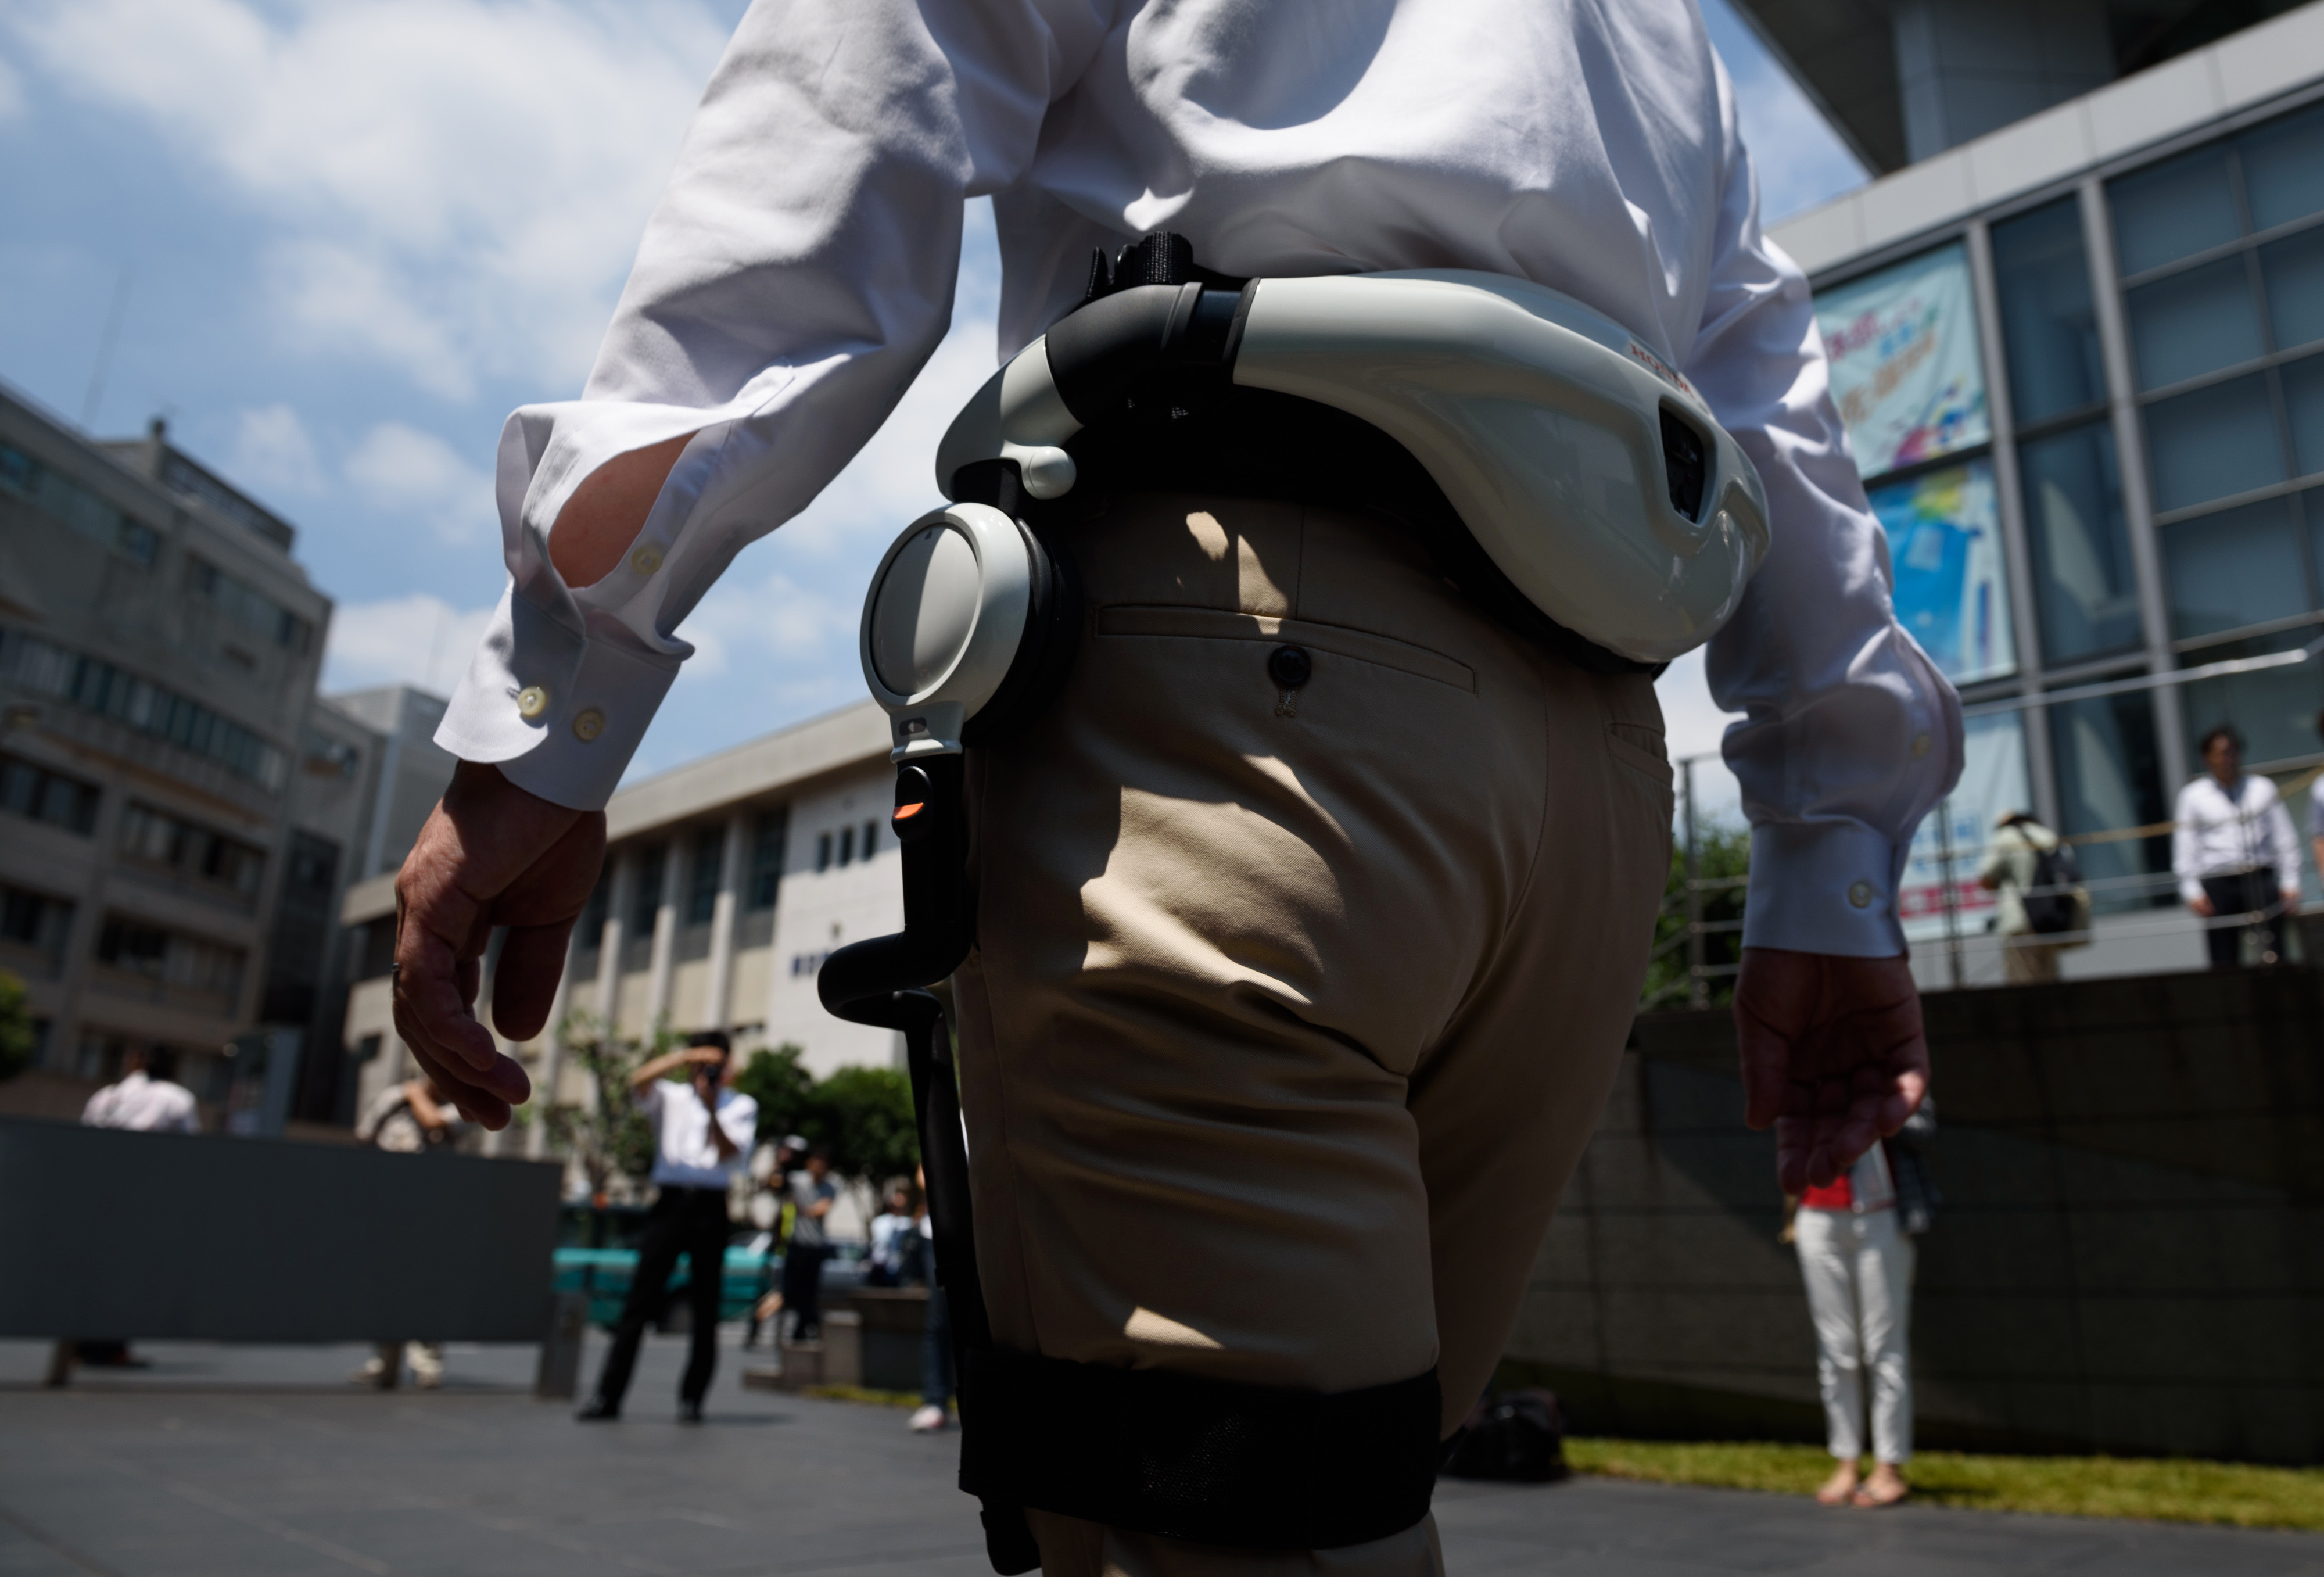 Honda Motor Co. Demonstrates Walk Assist And Mobility Device